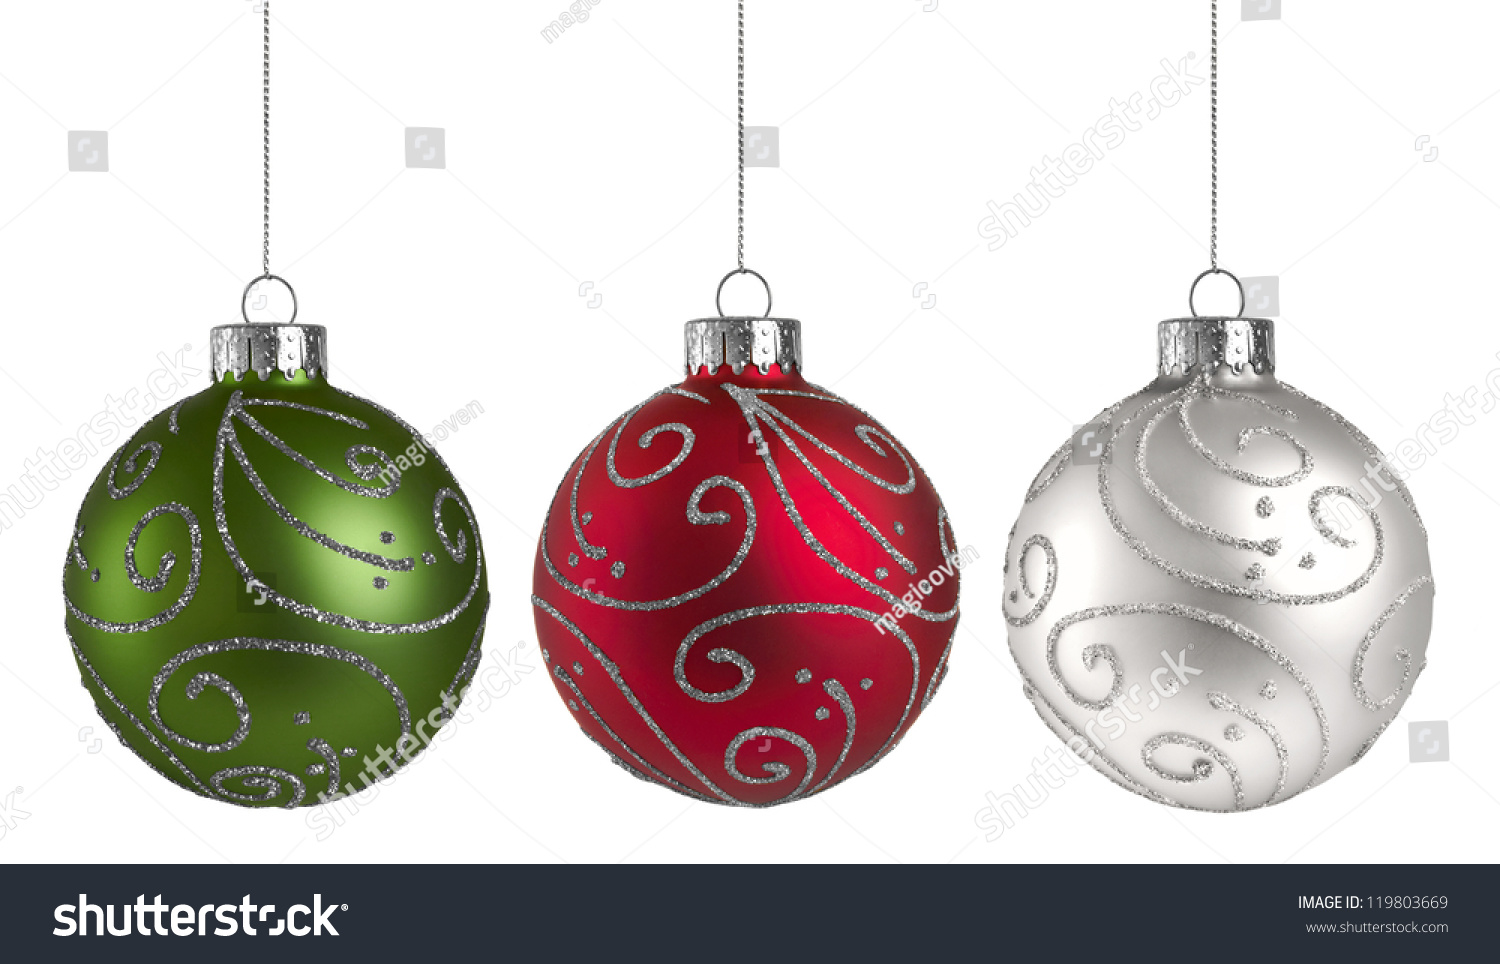 Christmas Ornaments Stock Photo (Edit Now) 119803669 - Shutterstock